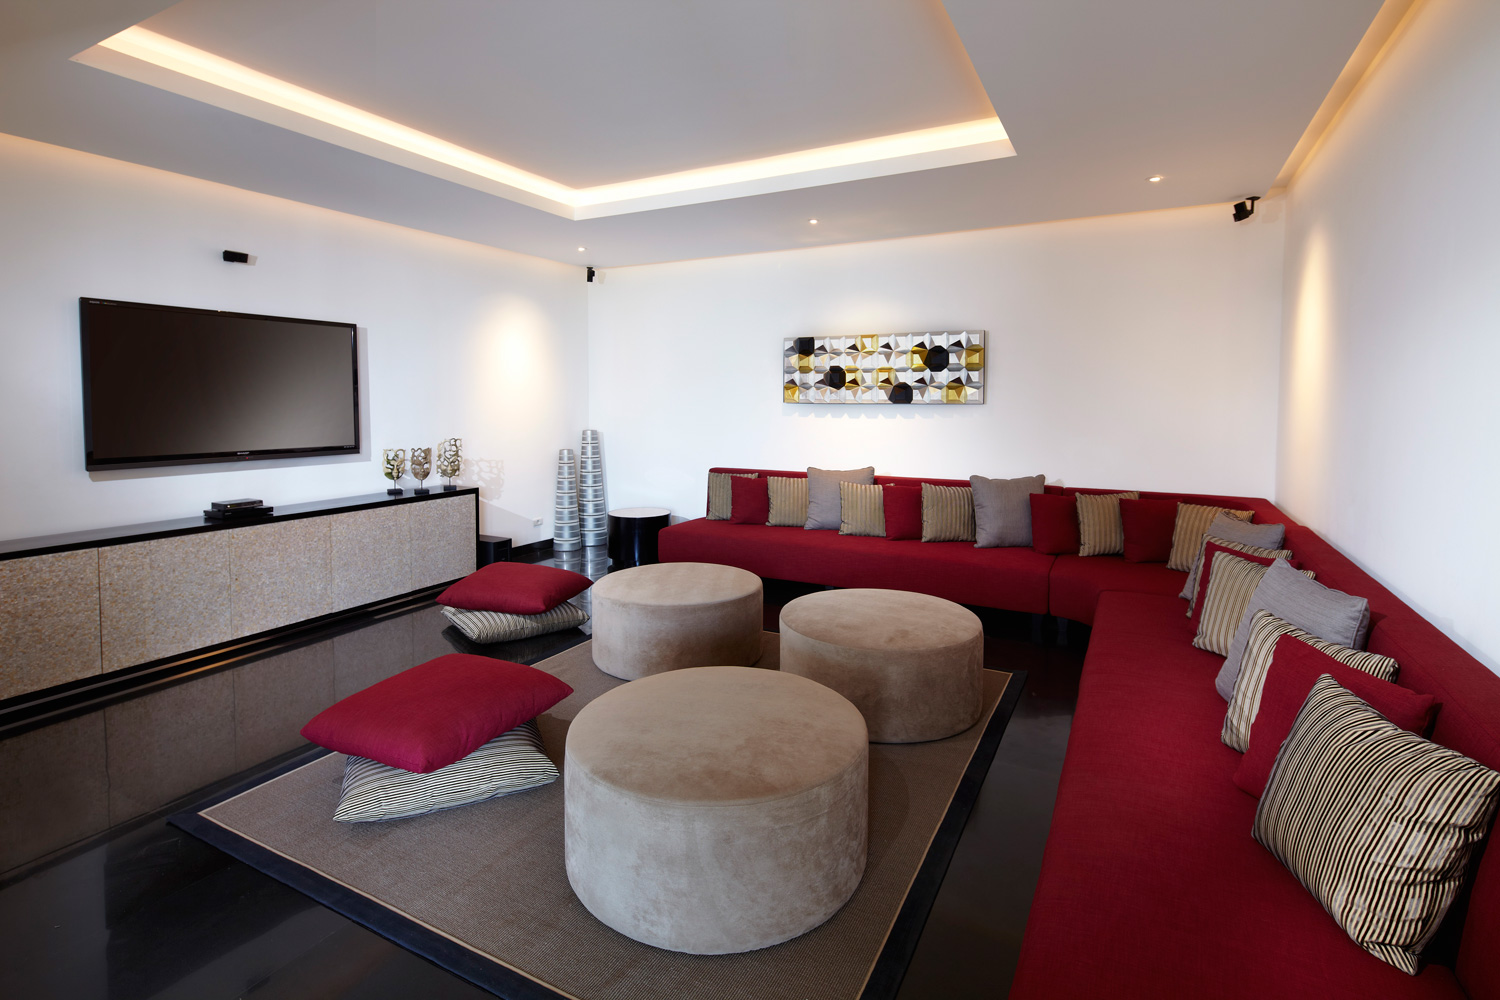 Media_Room_And_Big_Sofa